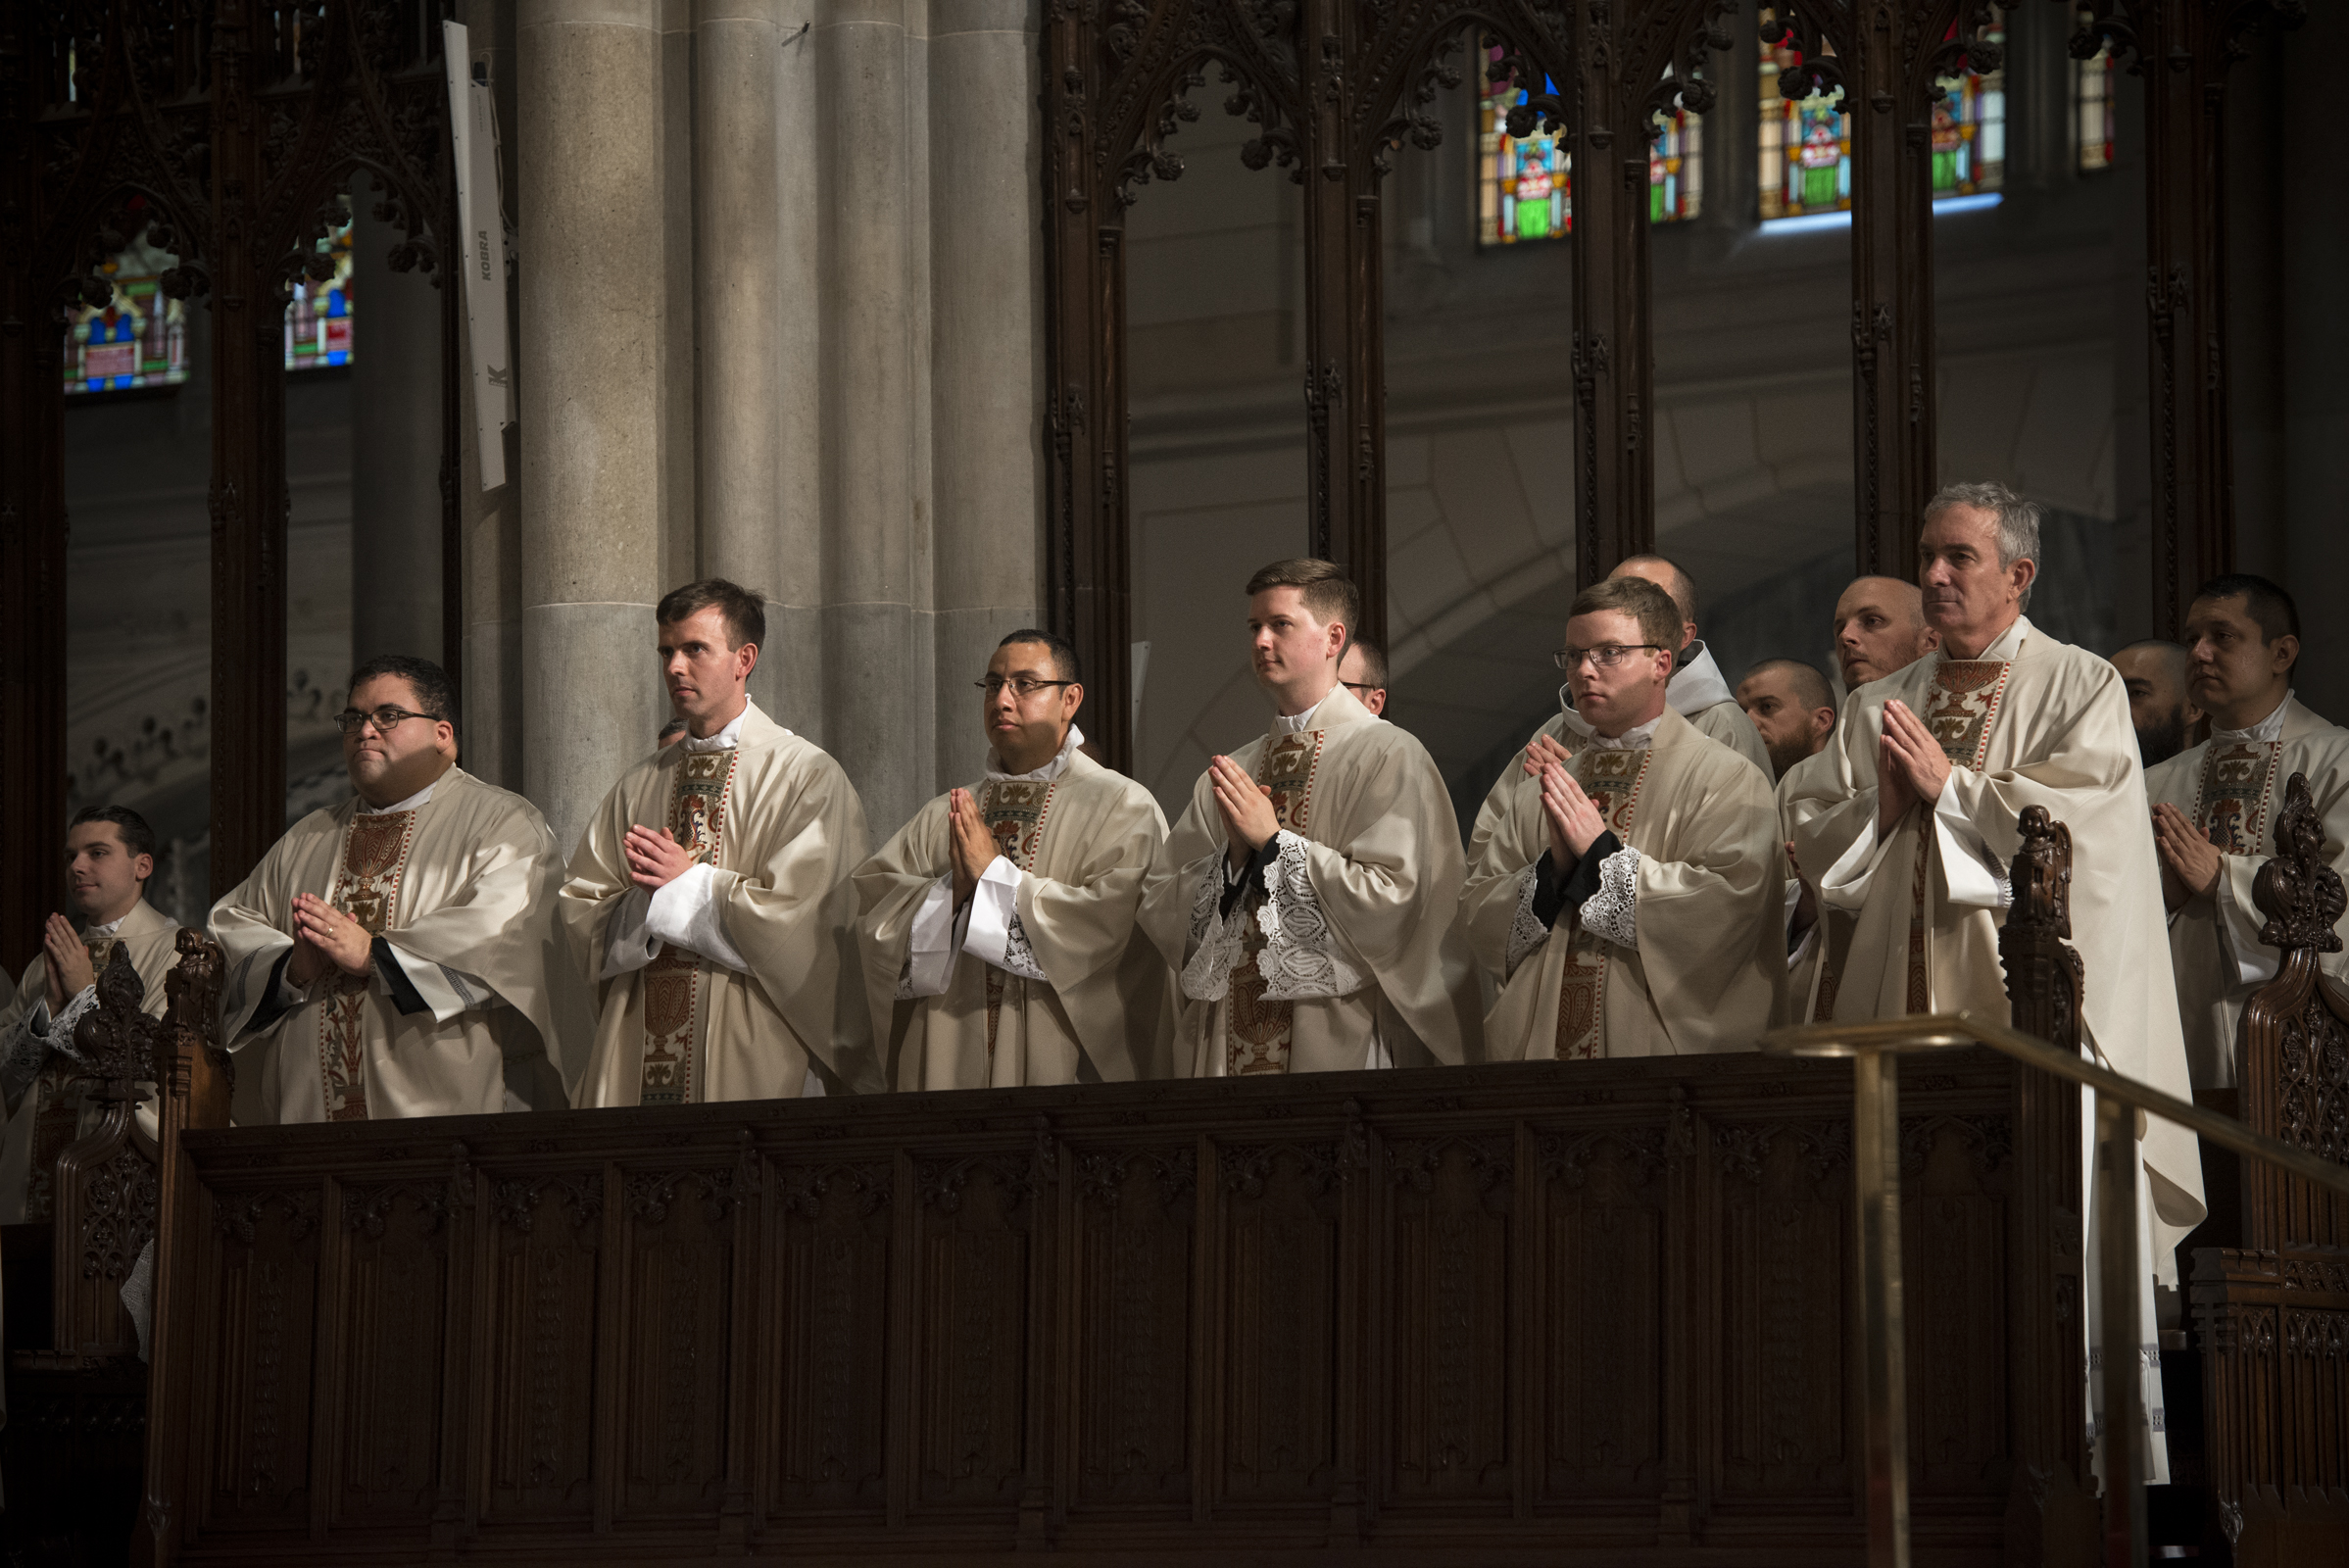 14 men were ordained on May 28th, 2016 at St Patricks Cathedral by Cardinal Dolan.